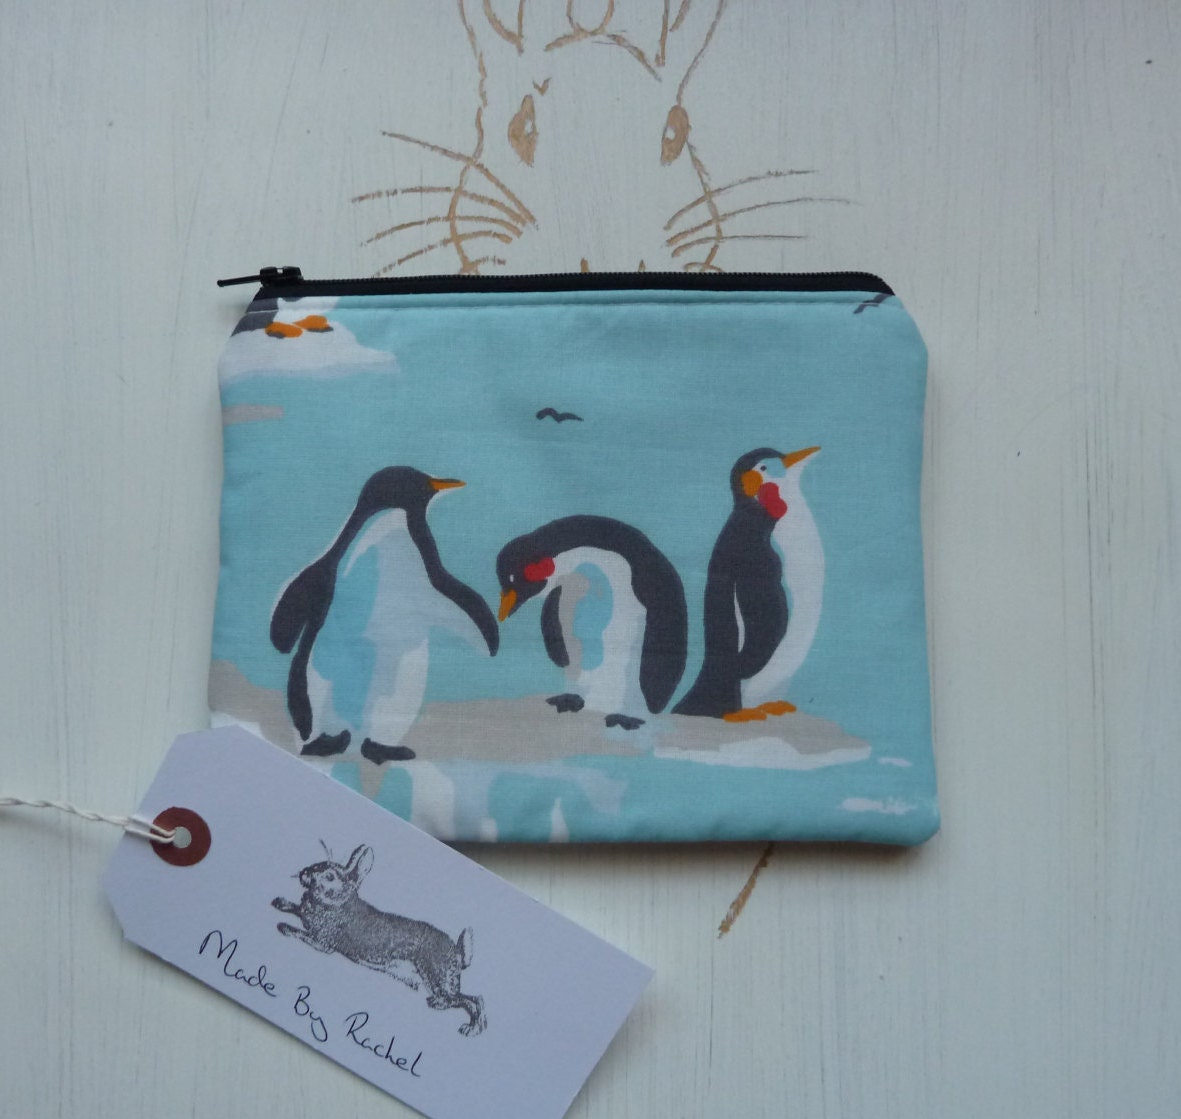 Penguin Makeup Bag Purse Cath Kidston Rare Fabric Cosmetic Pencil Case Padded Lined Handmade